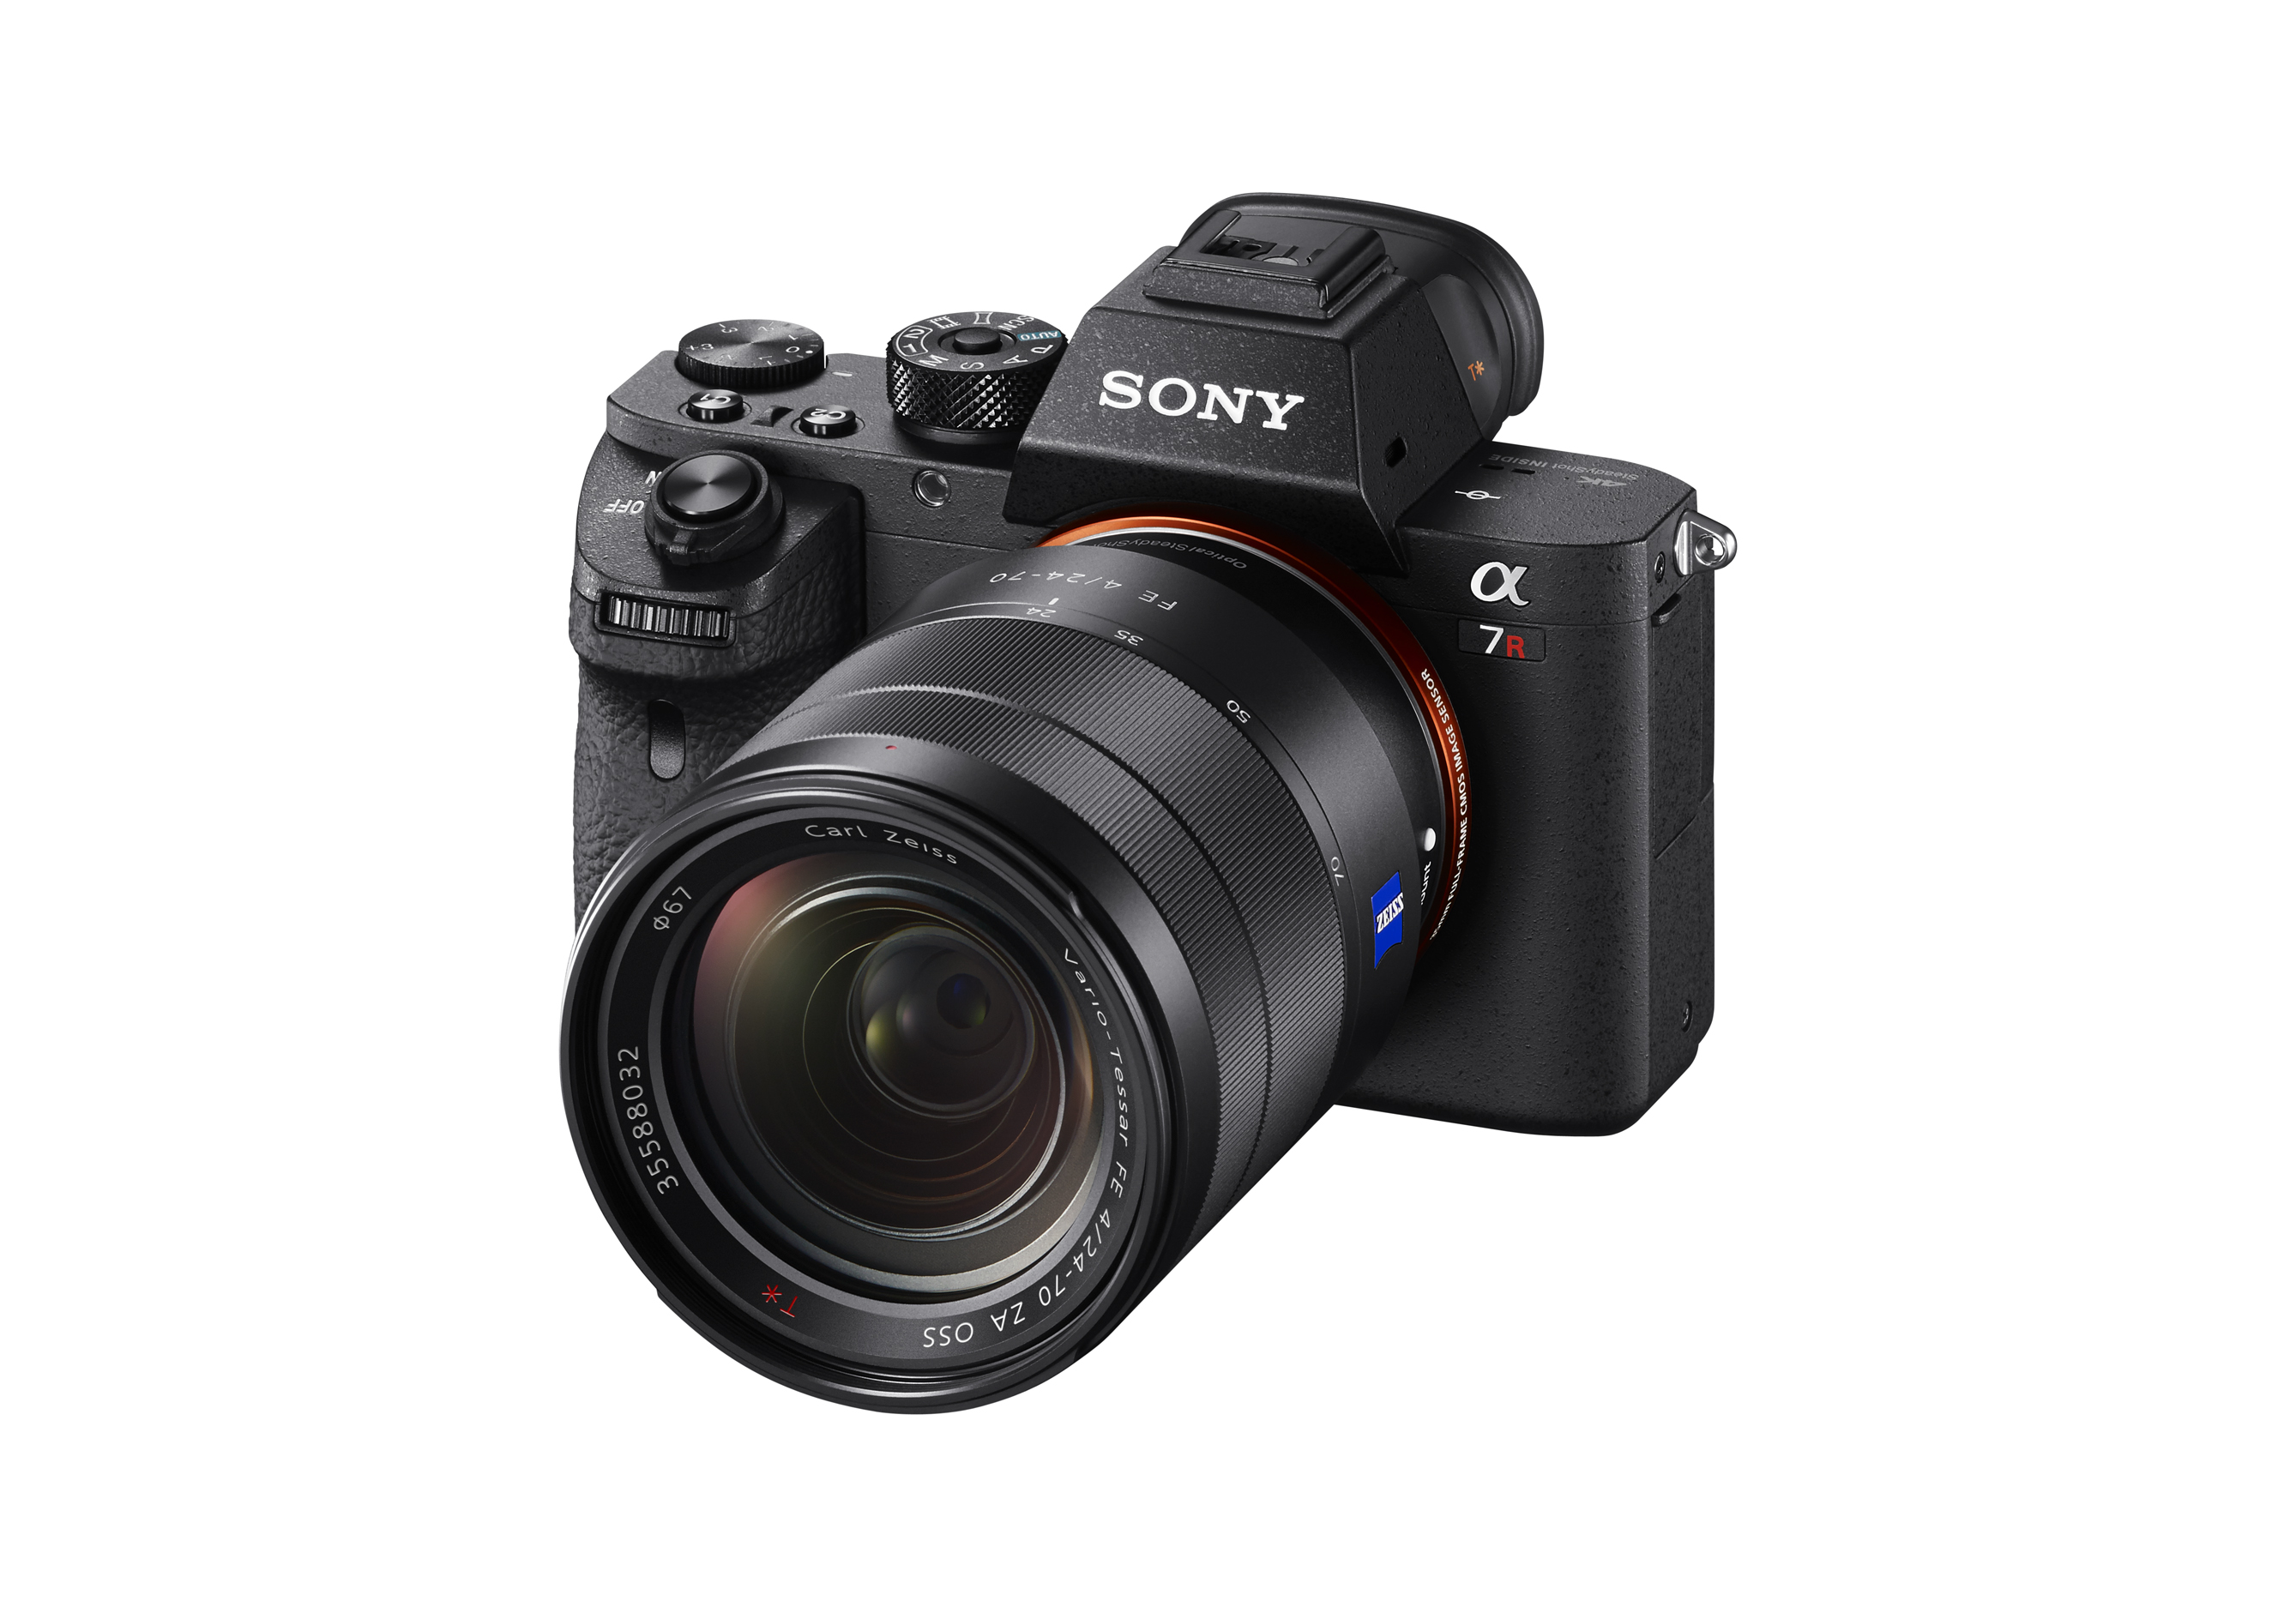 Camera Dslr Meaning Camera primer why would i buy a mirrorless camera digital photography most cameras allow slr lenses to be mounted using adapters the sony a7r ii is first that can autofocus other brand